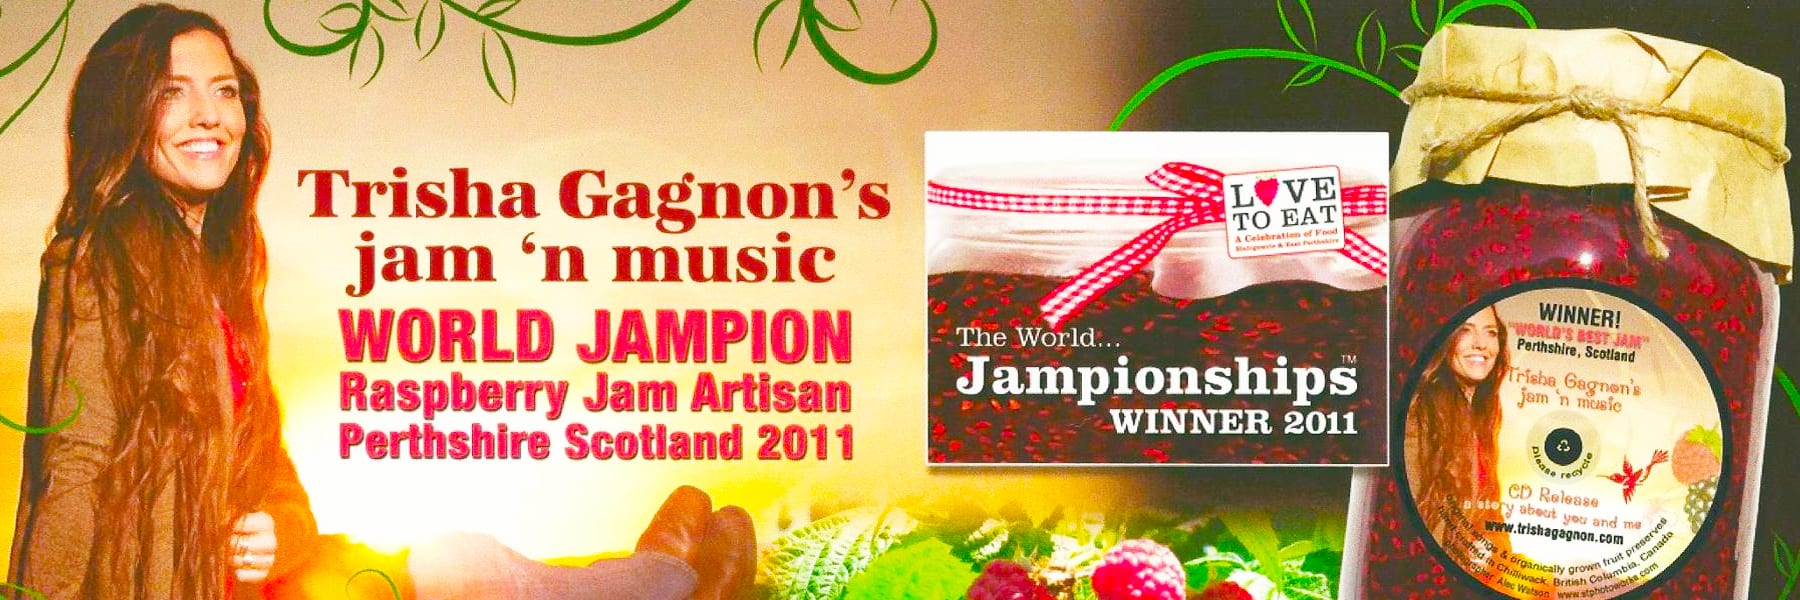 jam'n music by Trisha Gagnon - World Jampion Raspberry Jam Artisan